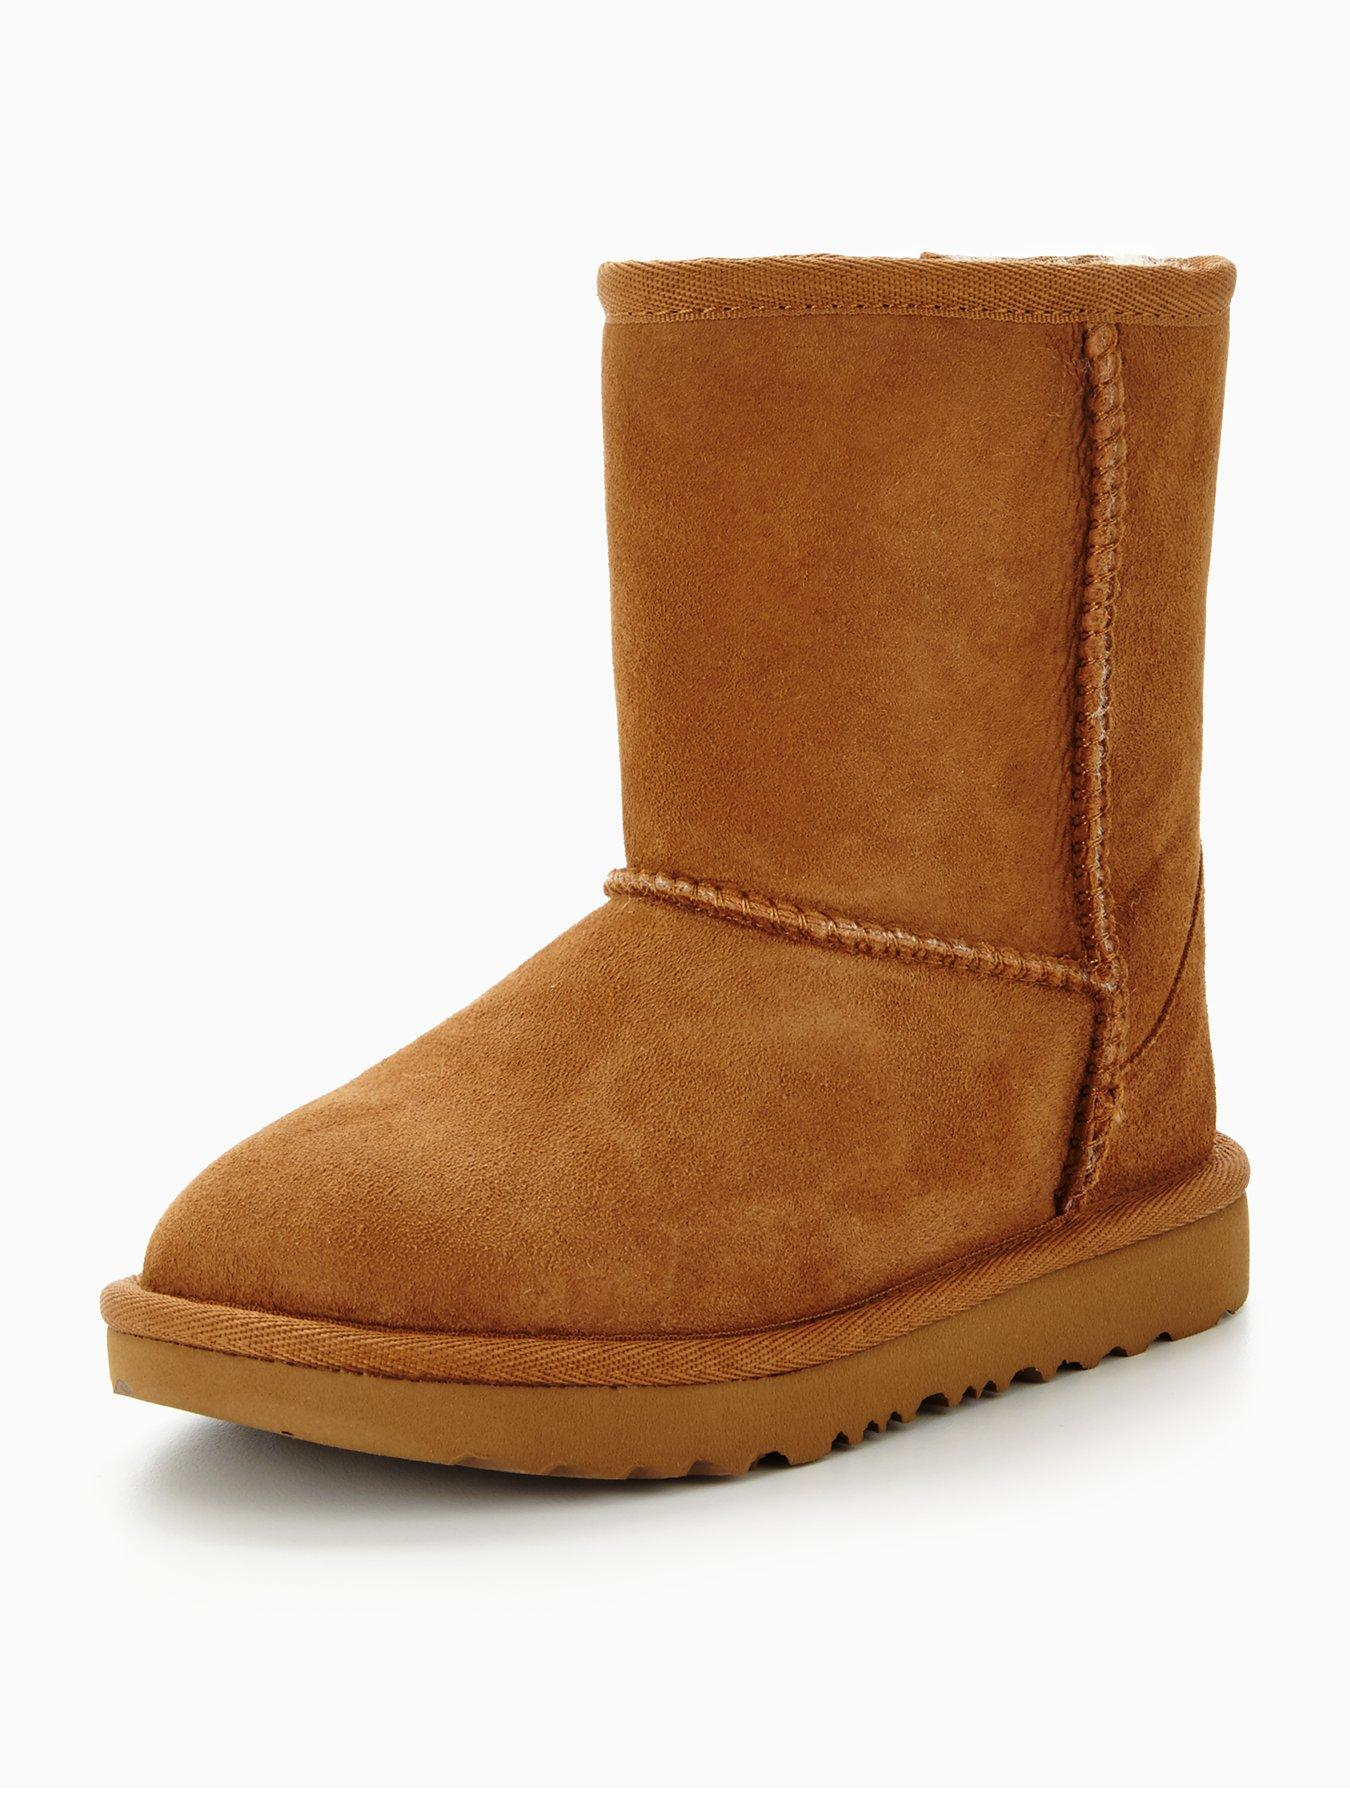 ugg boots in england